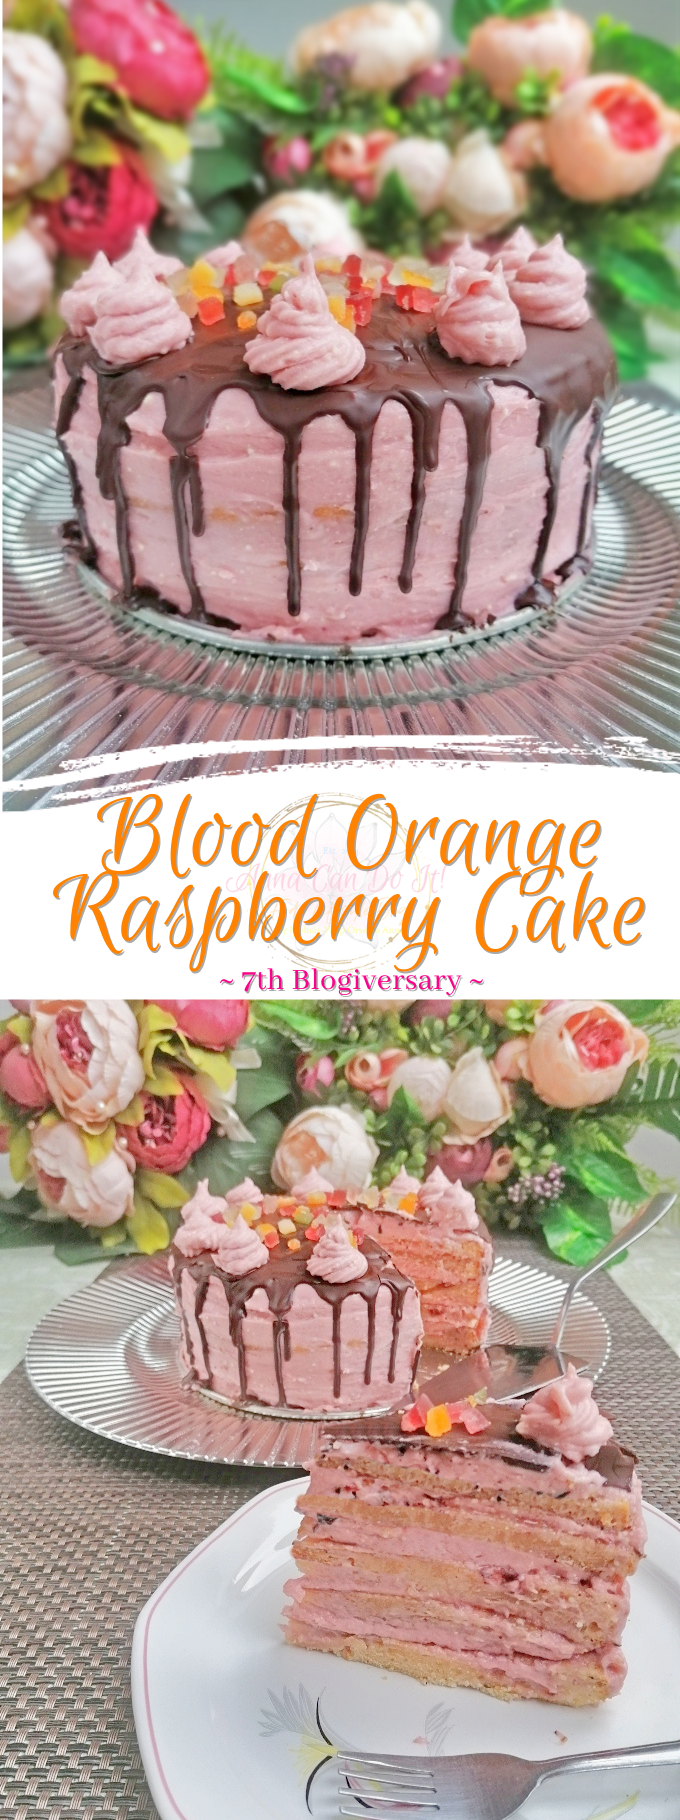 Blood Orange Raspberry Cake - Anna Can Do It!